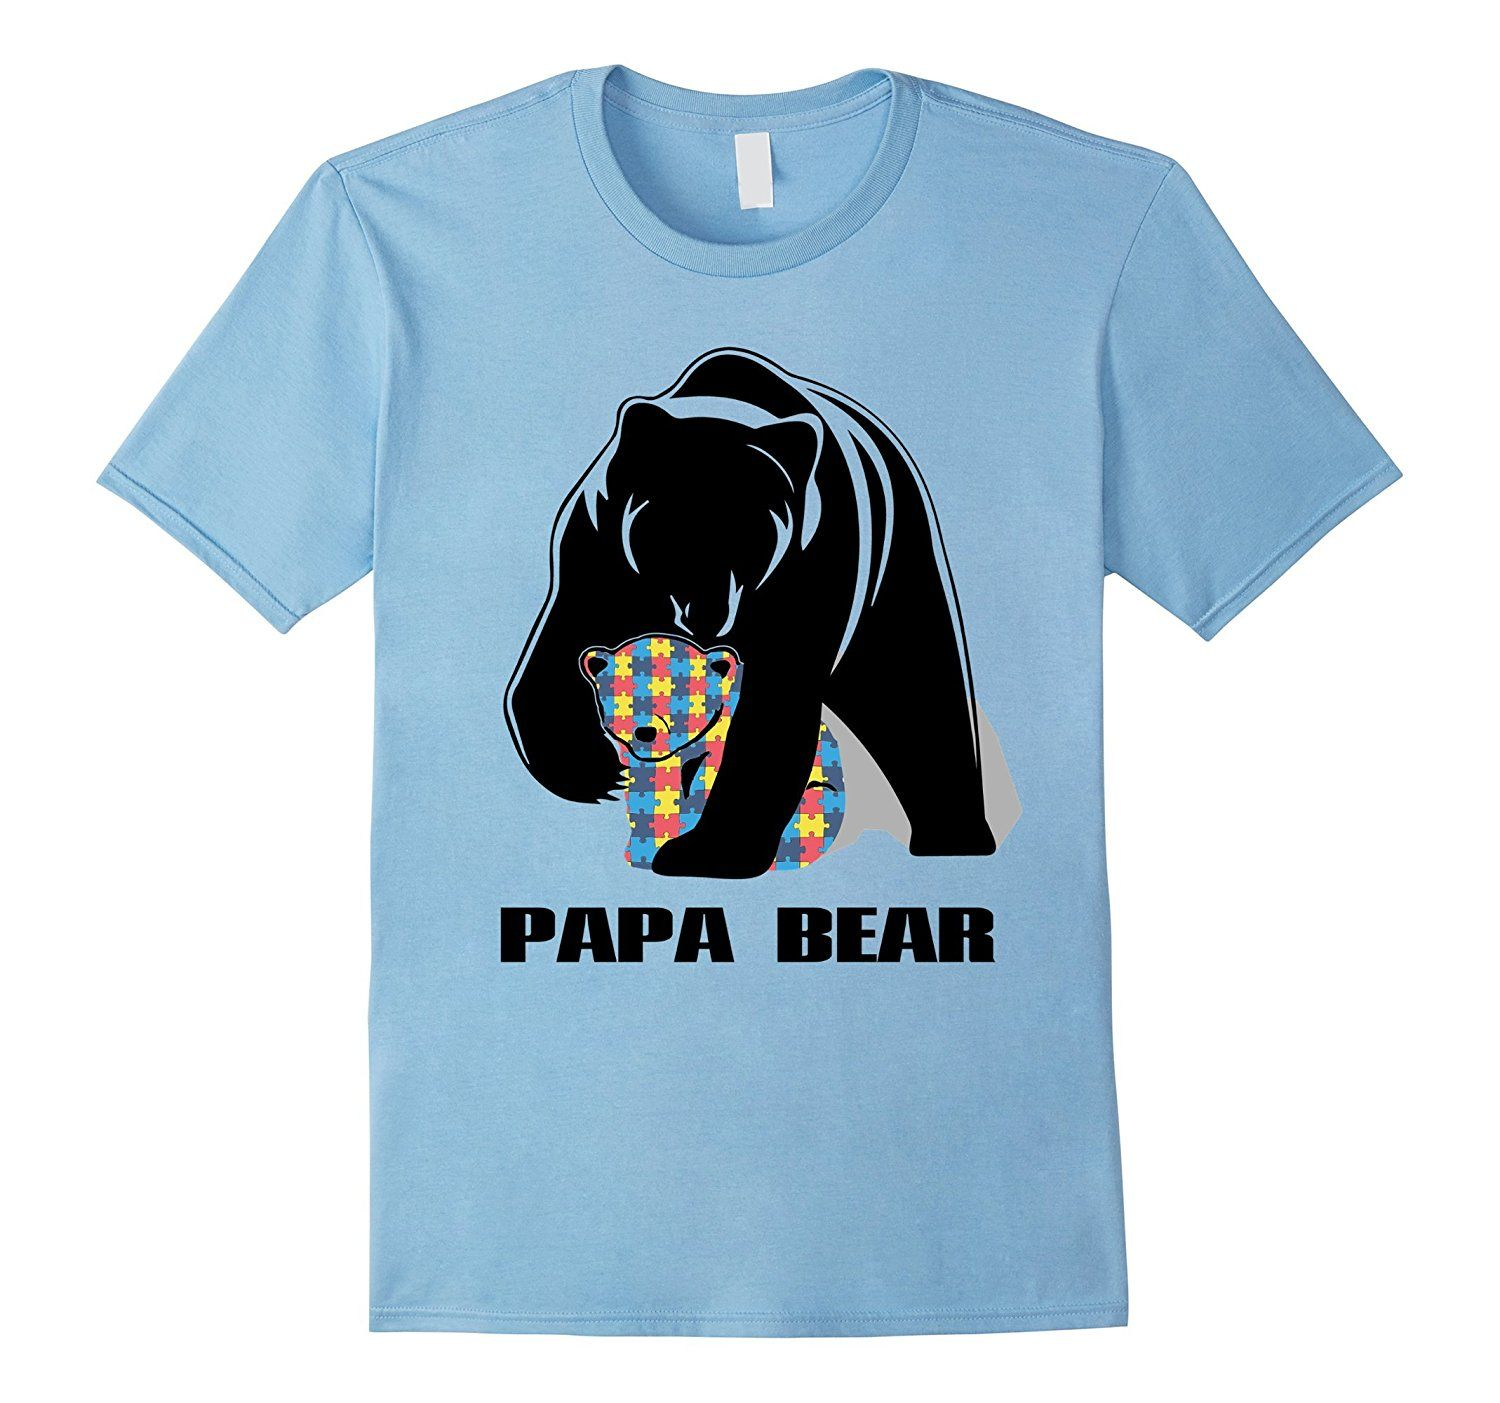 Amazon.com: 2017 Autism Papa Bear Shirt: Clothing | TShirt ...